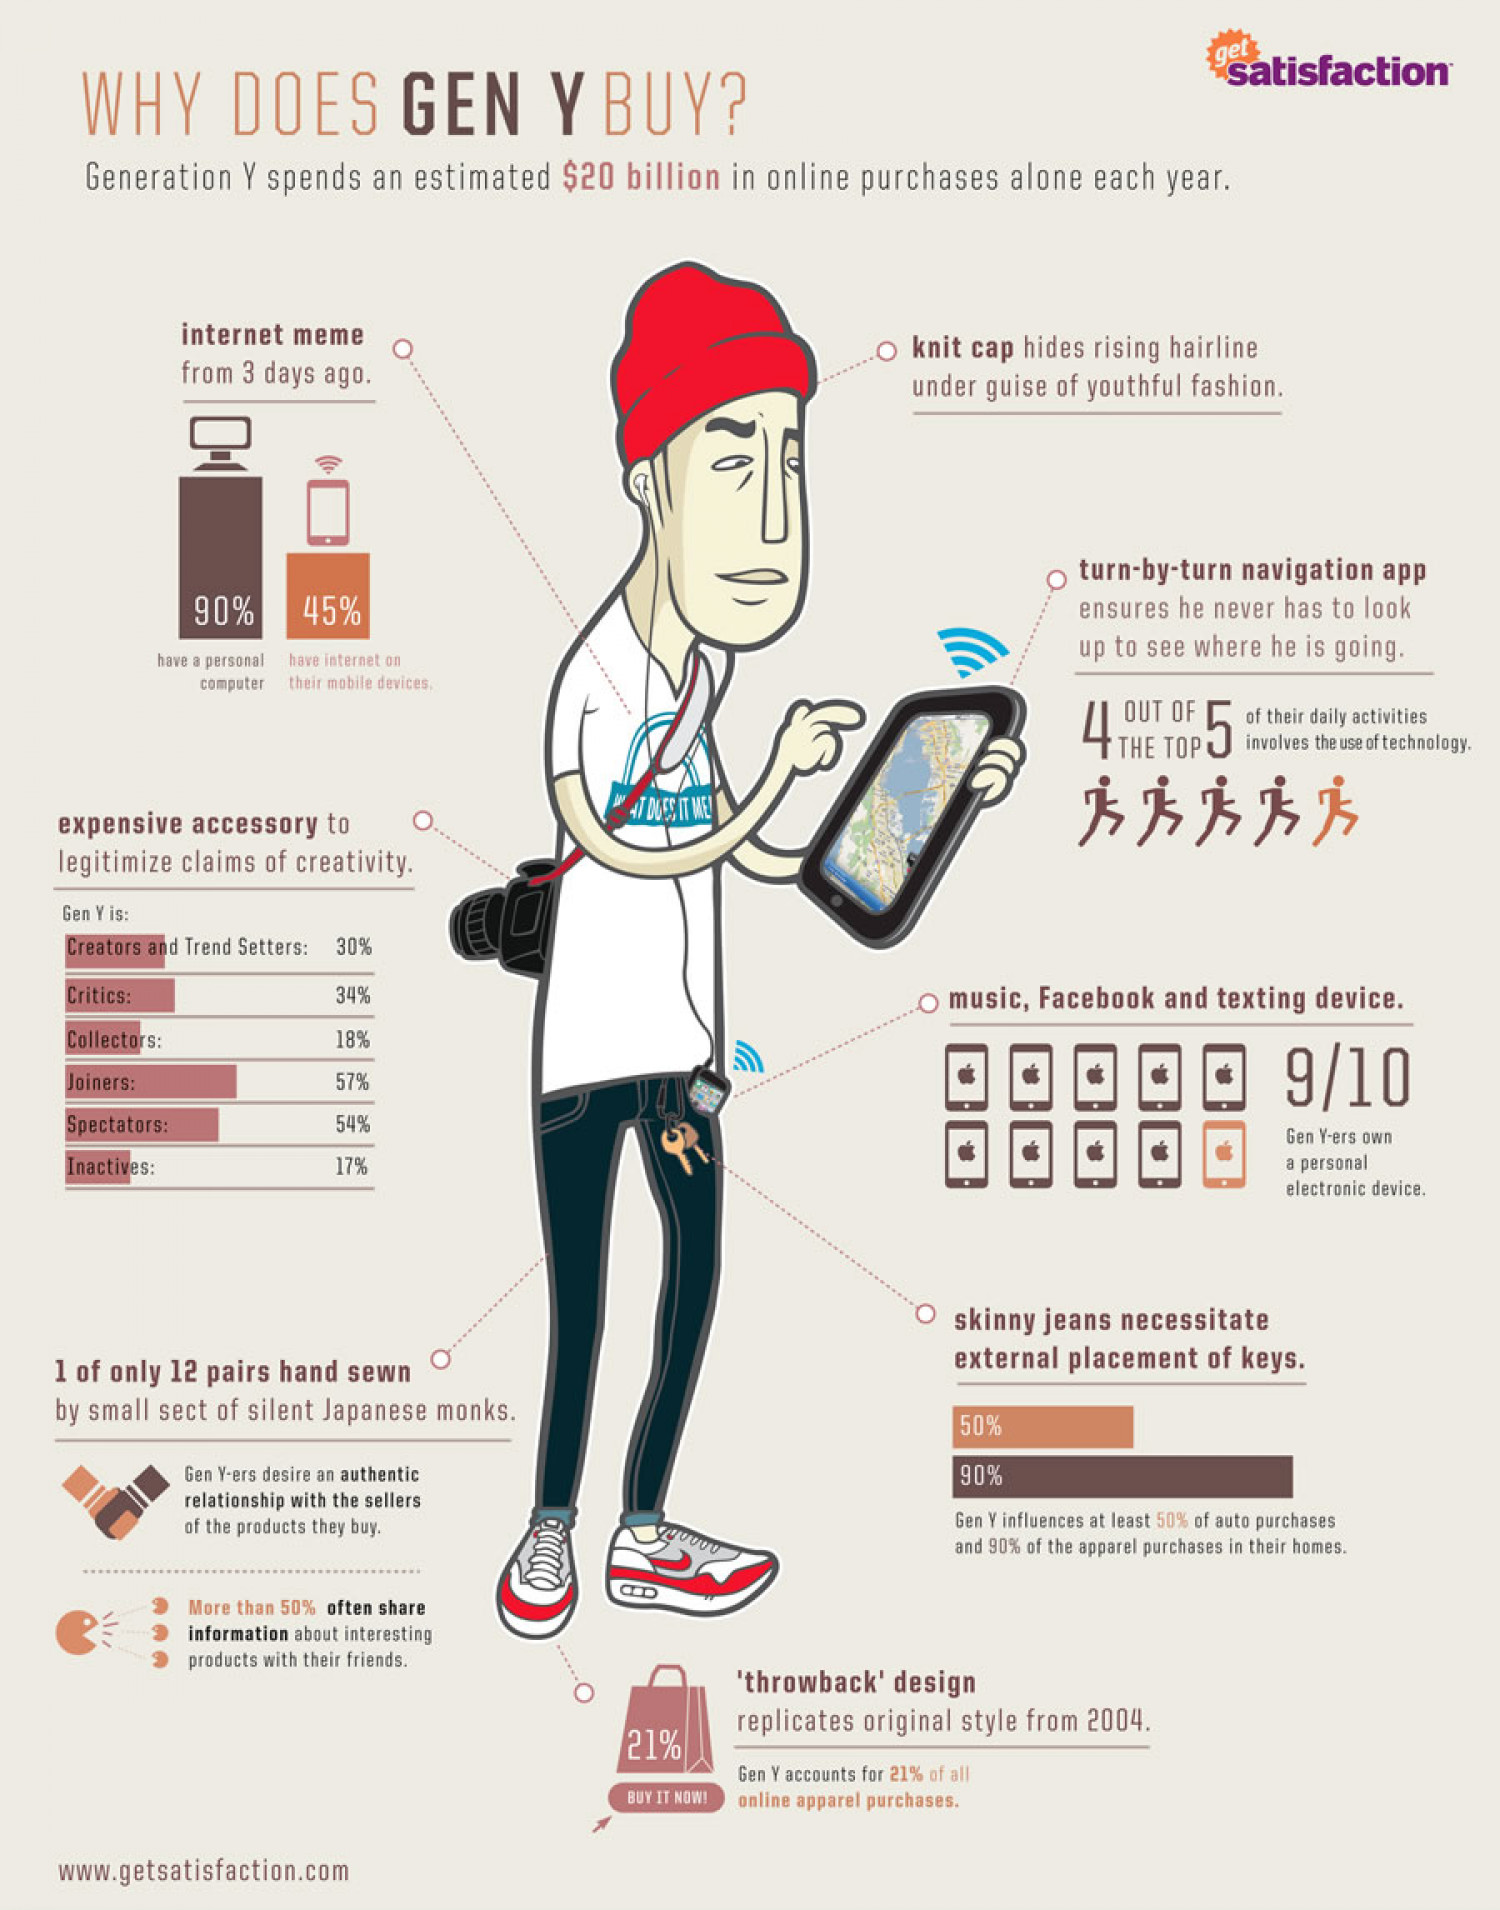 Why Does Gen Y Buy? Infographic